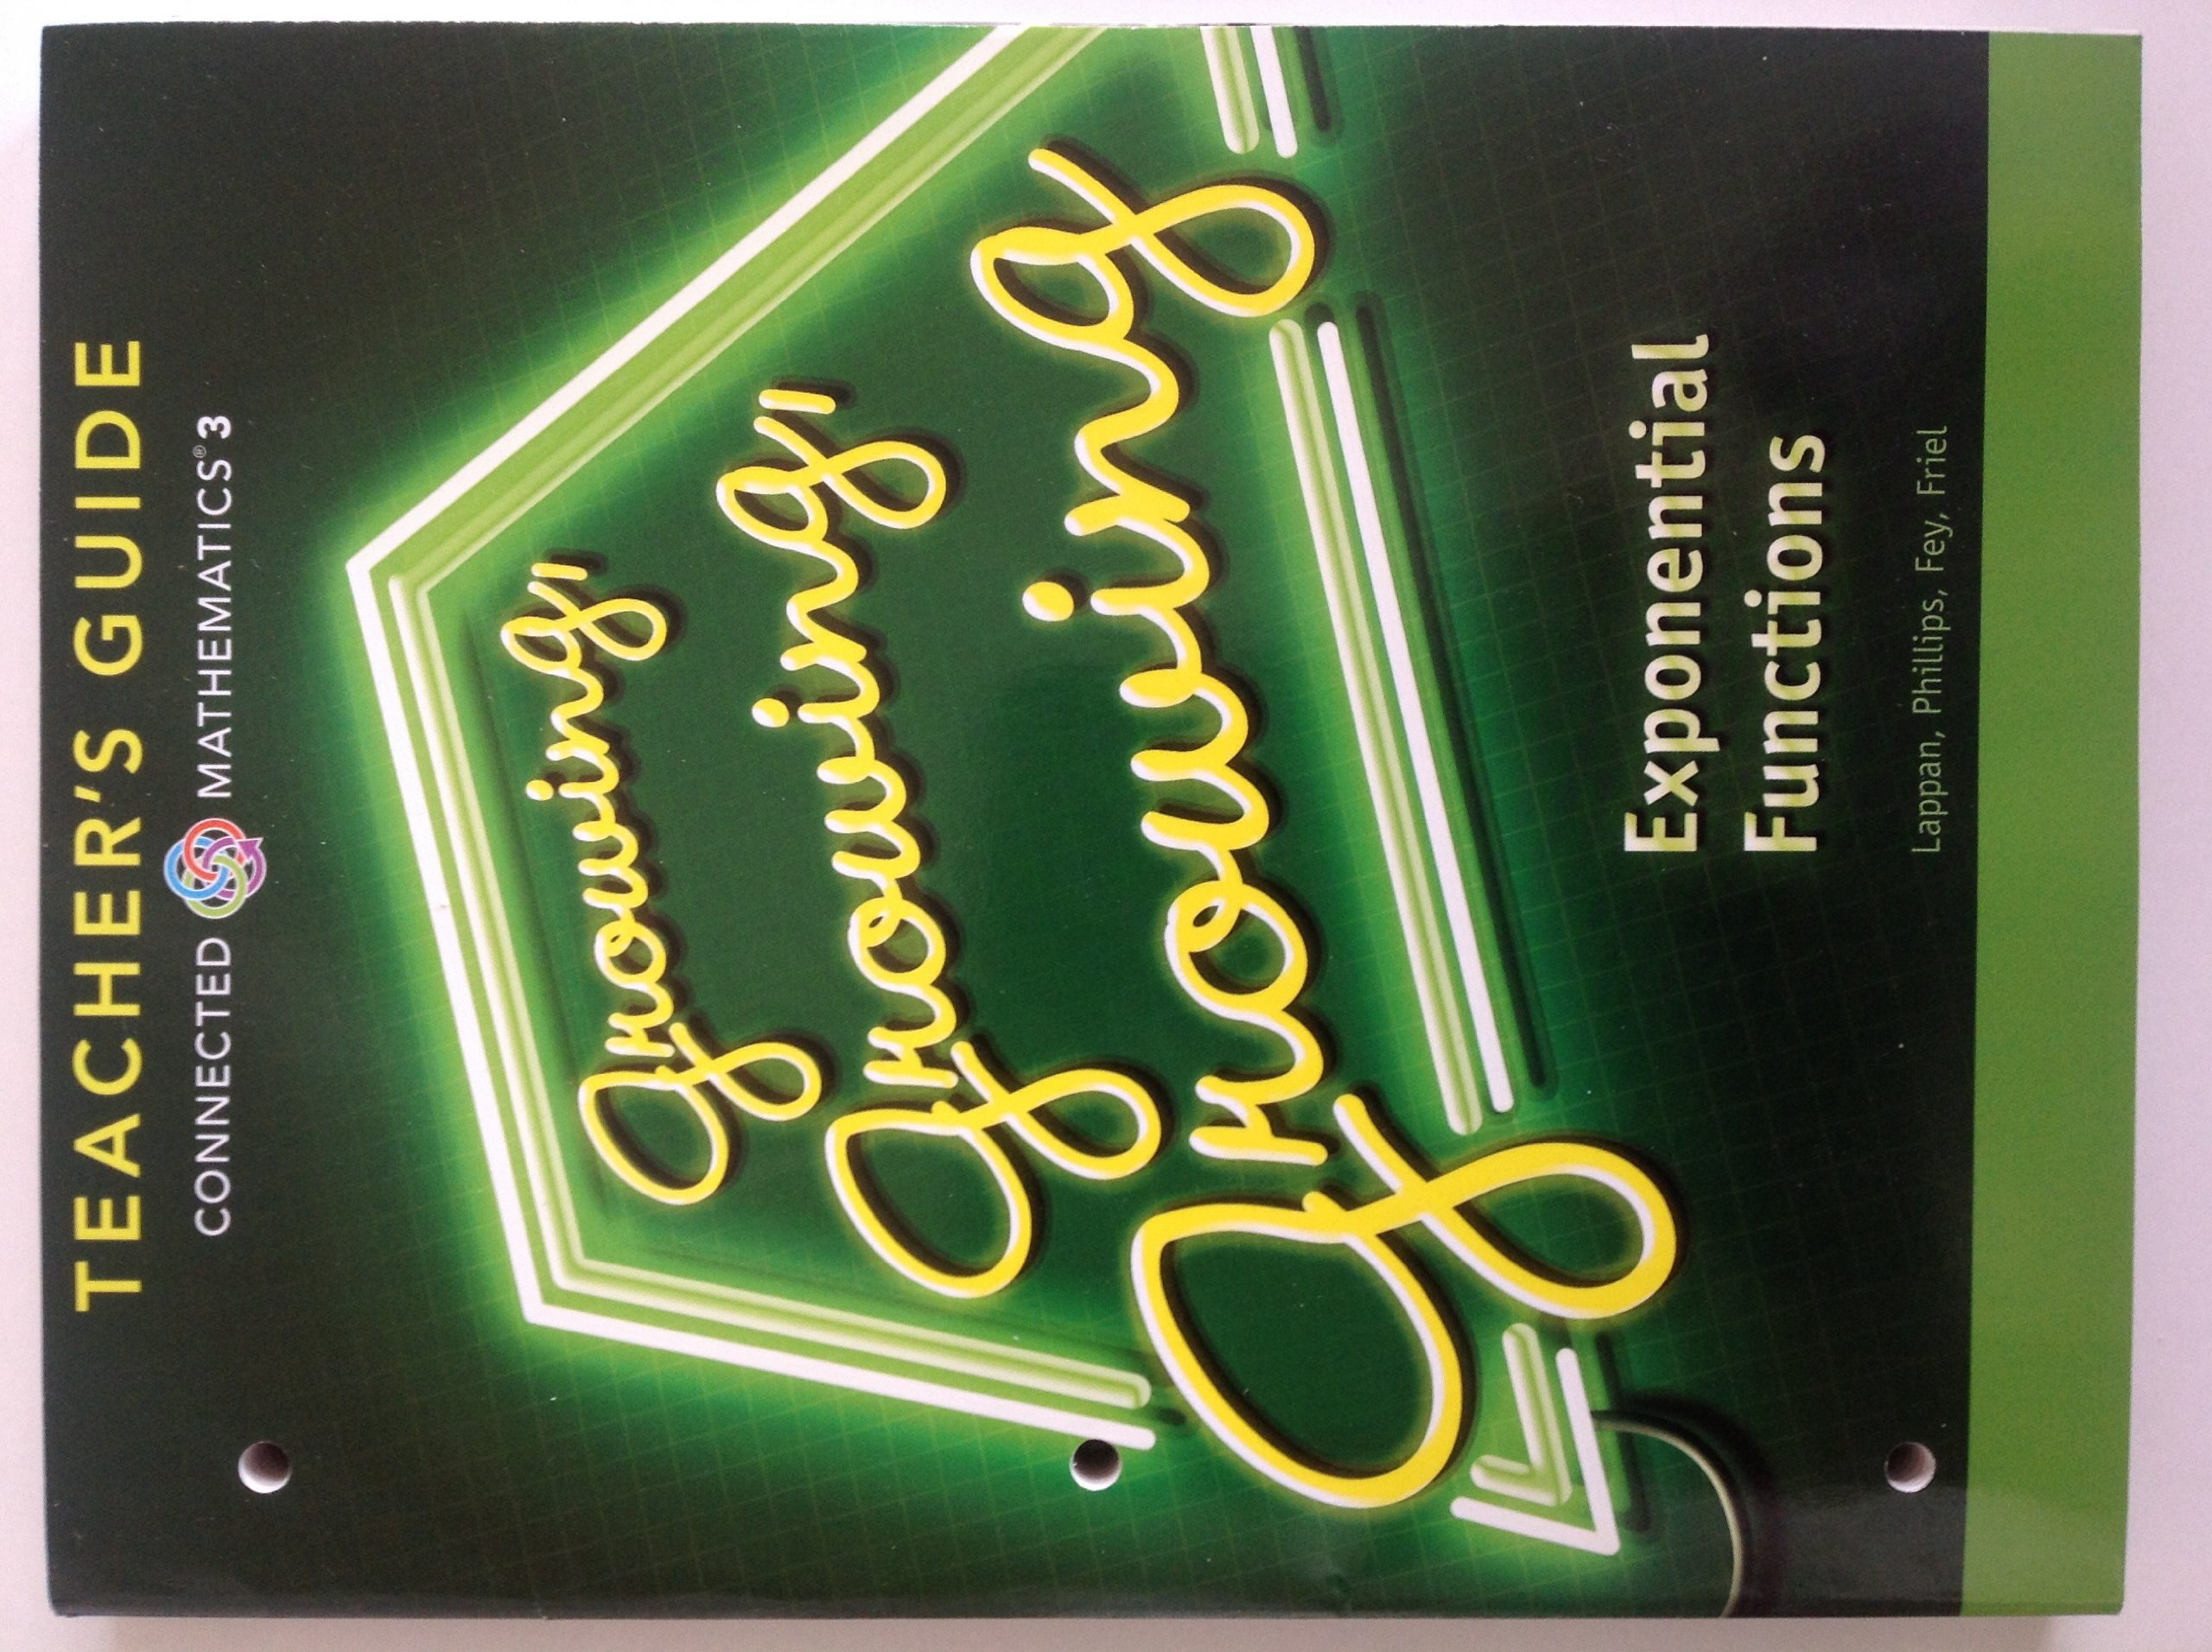 Connected mathematics 3 teachers guide grade 8 growing growing connected mathematics 3 teachers guide grade 8 growing growing growing exponential functions copyright 2014 prentice hall 9780133276640 amazon fandeluxe Image collections